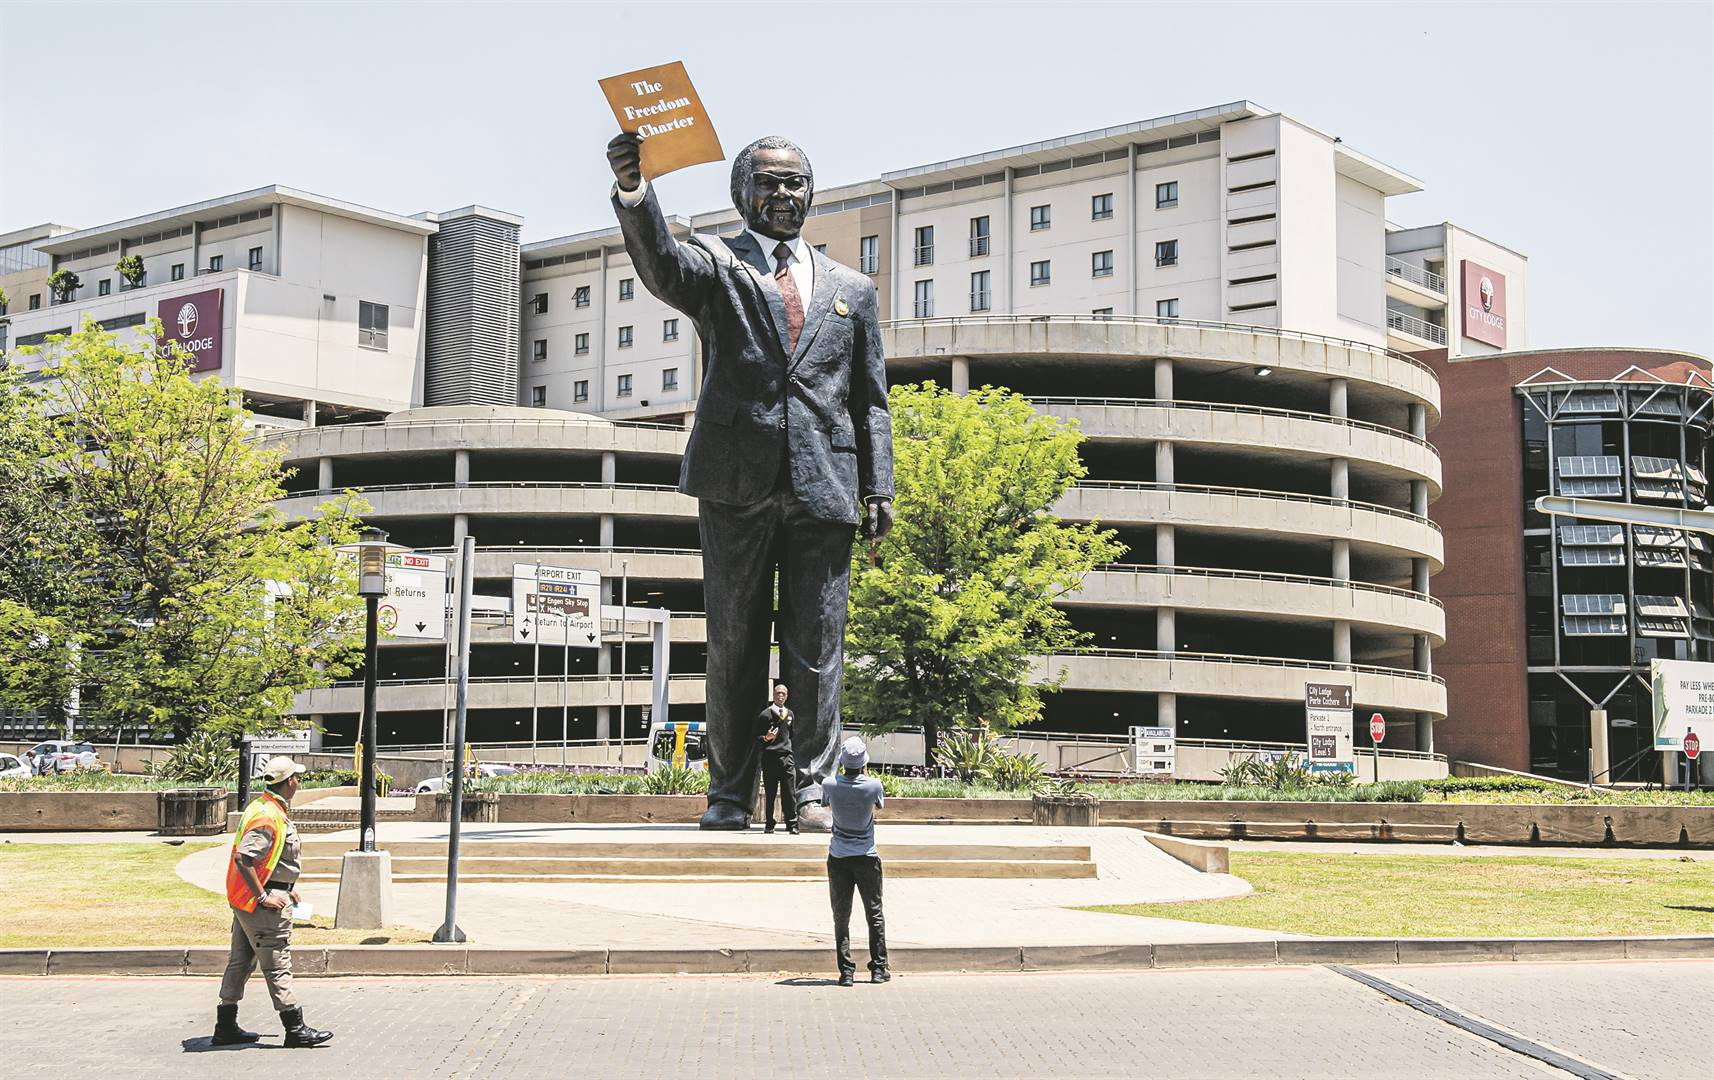 OR Tambo statue. Picture Deon Raath